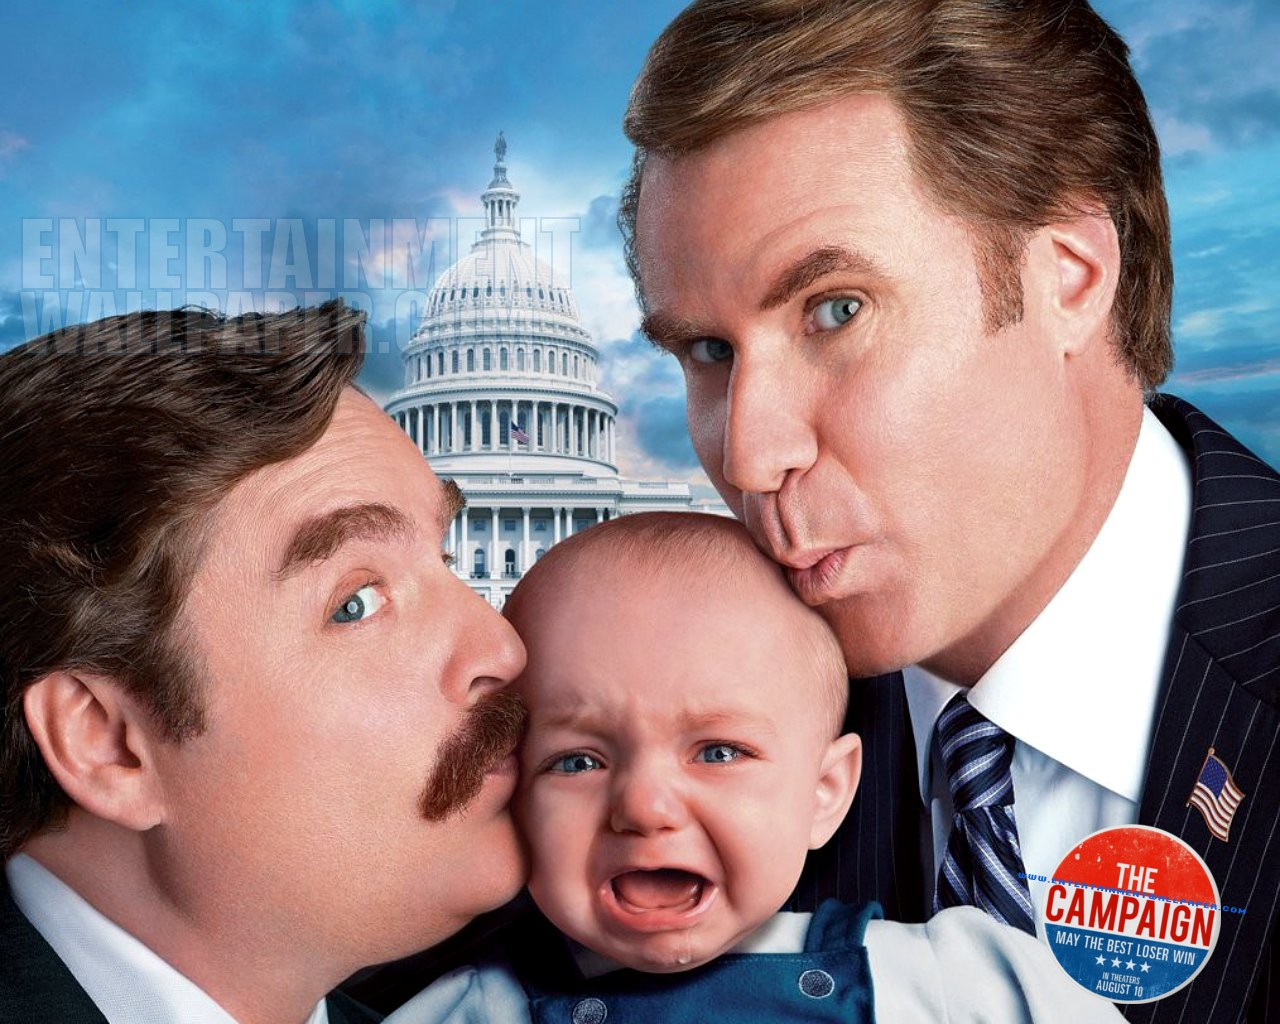 The Campaign Movie Quotes Marty Huggins Either way  the campaignThe Campaign Cast